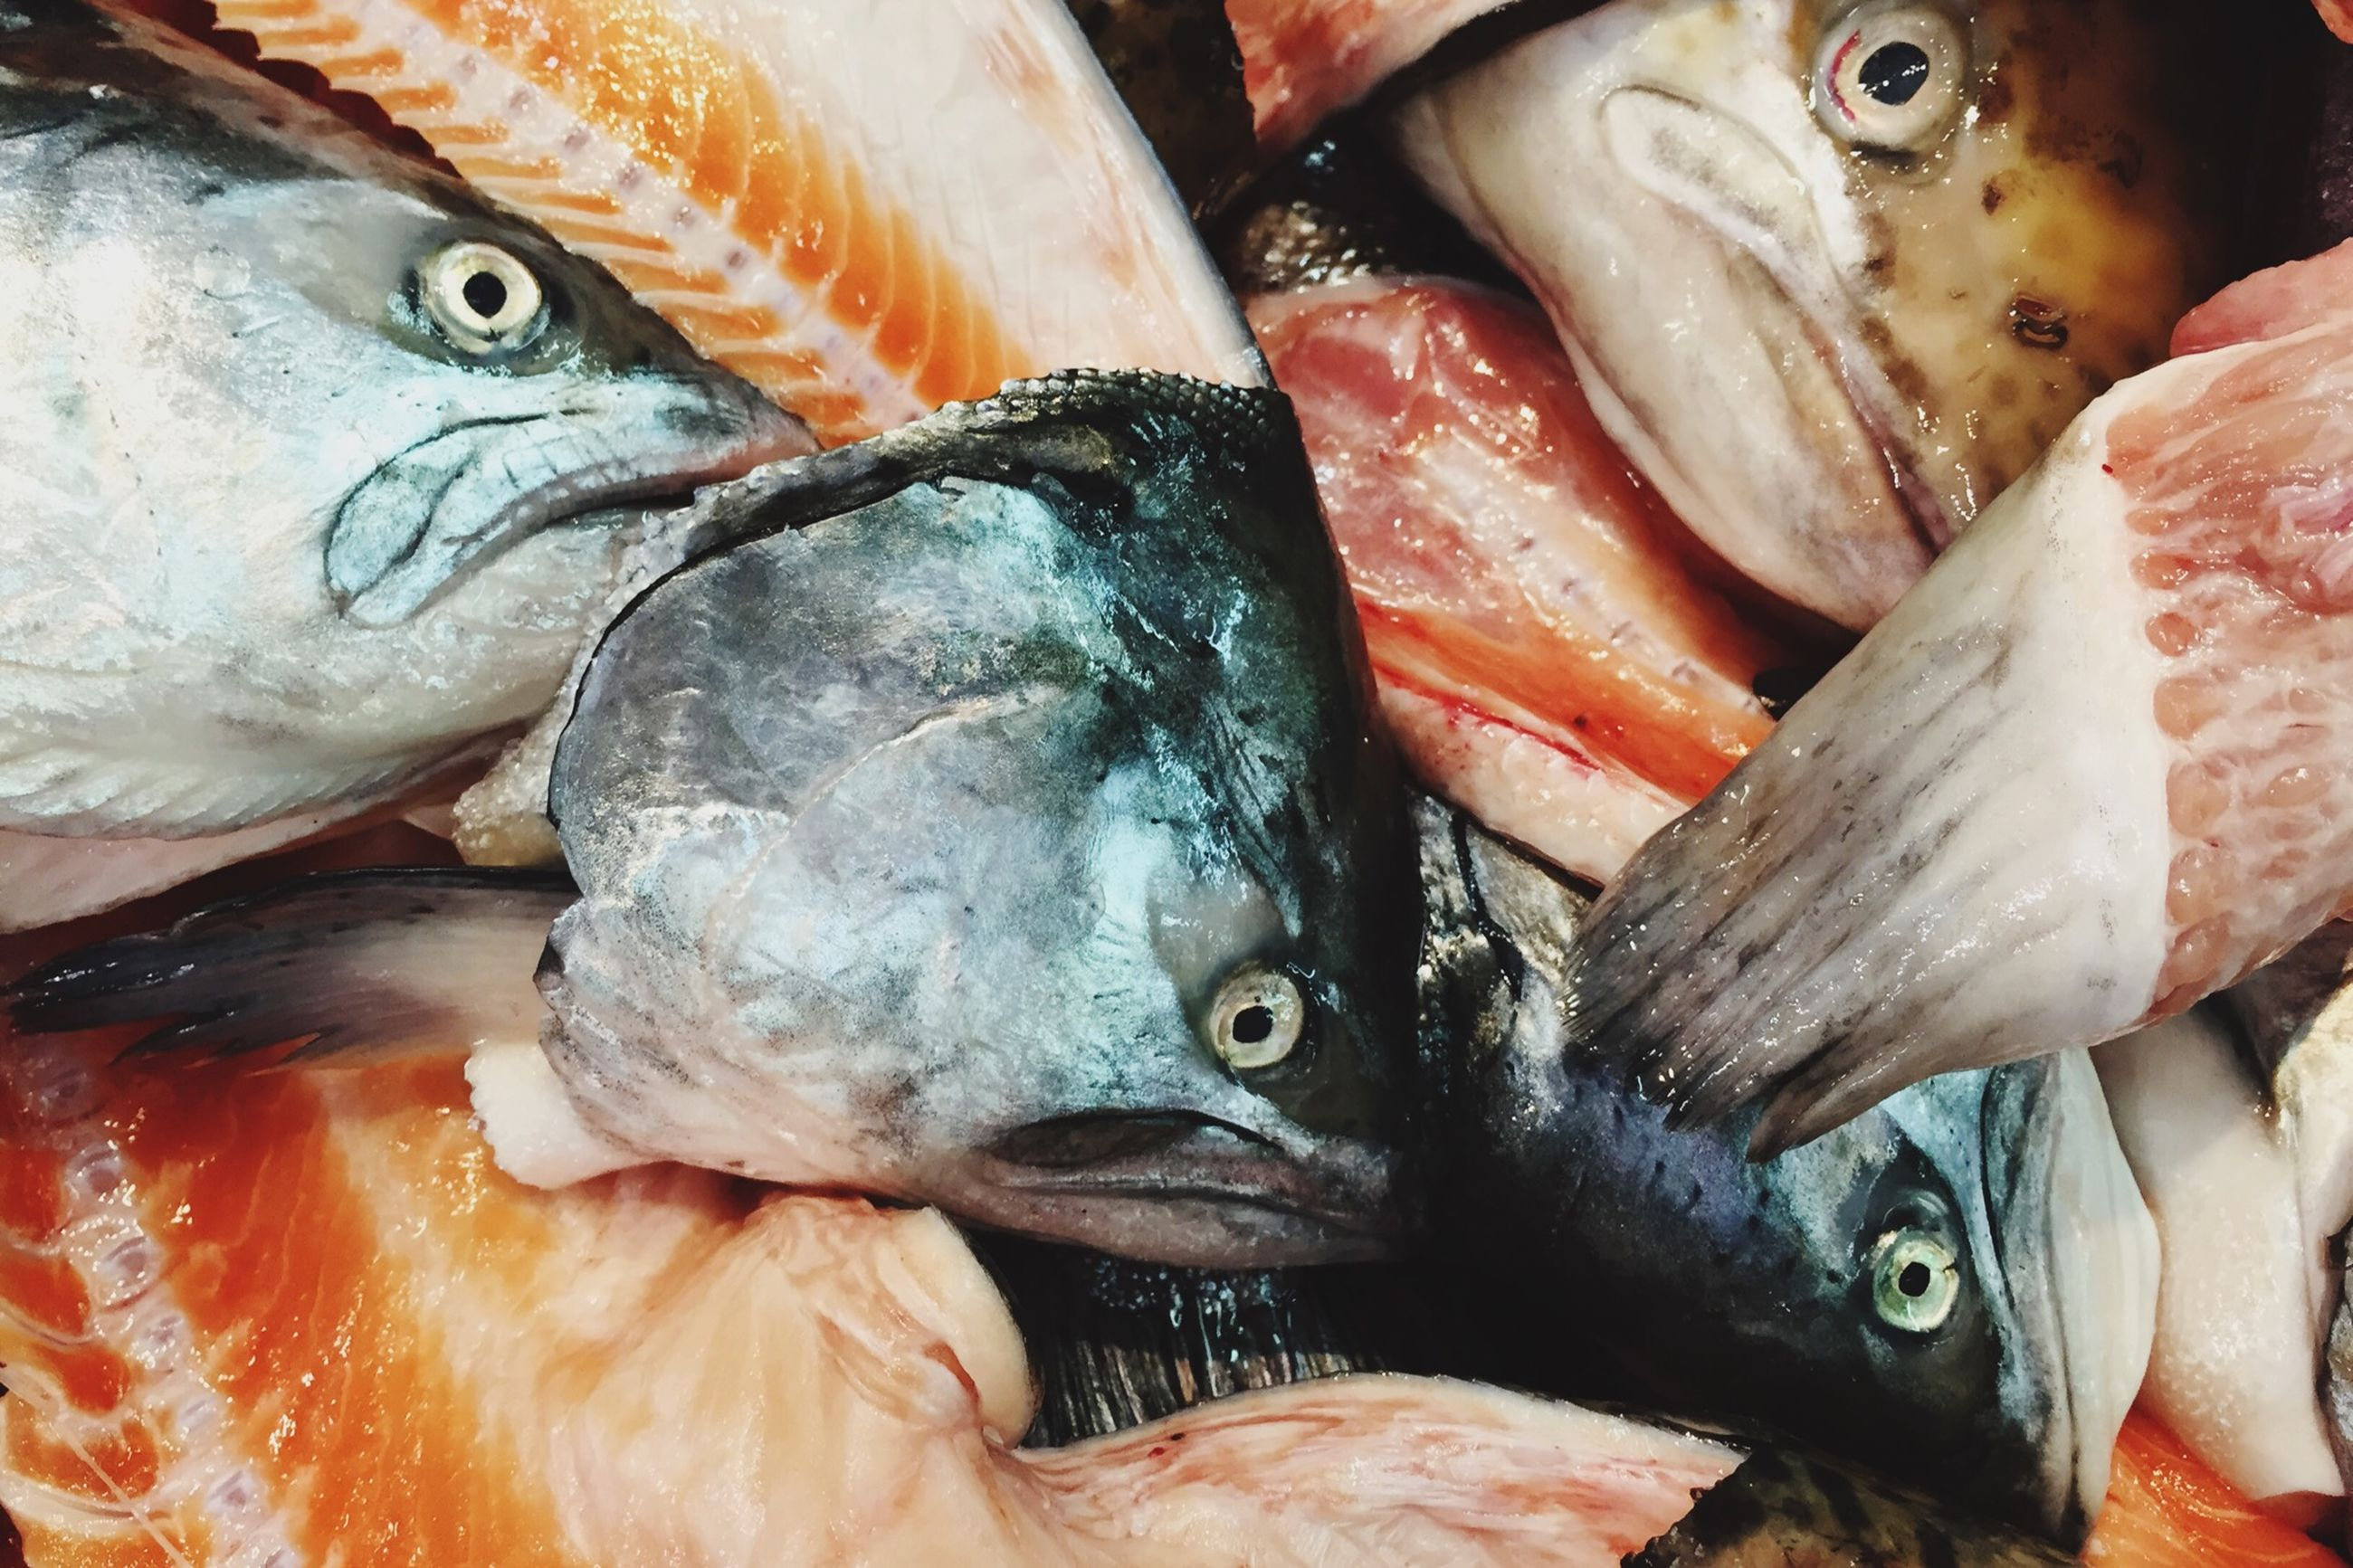 fish, animal themes, seafood, dead animal, for sale, healthy eating, close-up, variation, food and drink, retail, fish market, sale, abundance, food, market stall, market, indoors, choice, raw food, high angle view